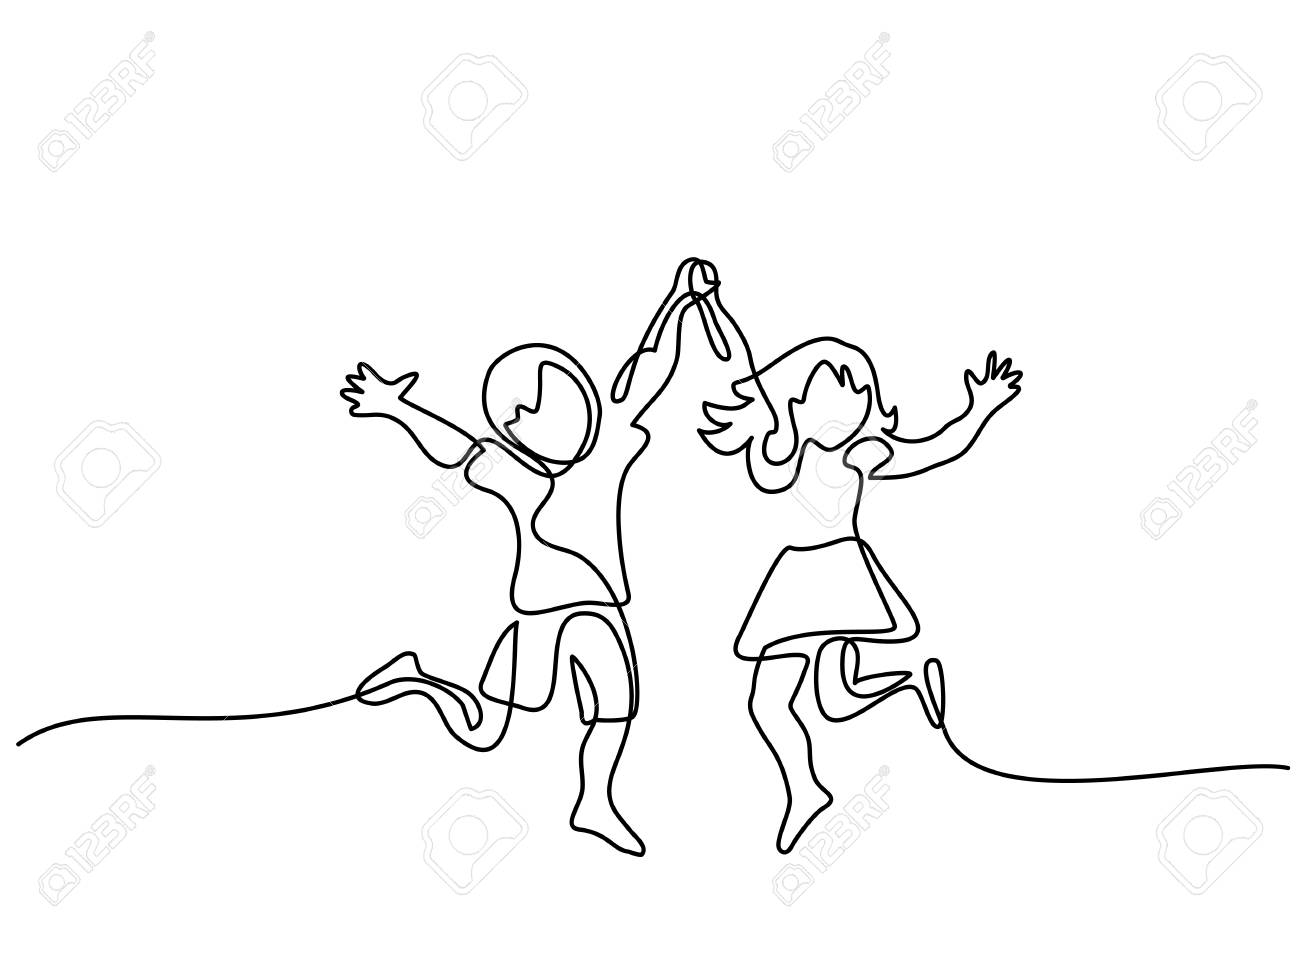 happy jumping children holding hands. continuous line drawing